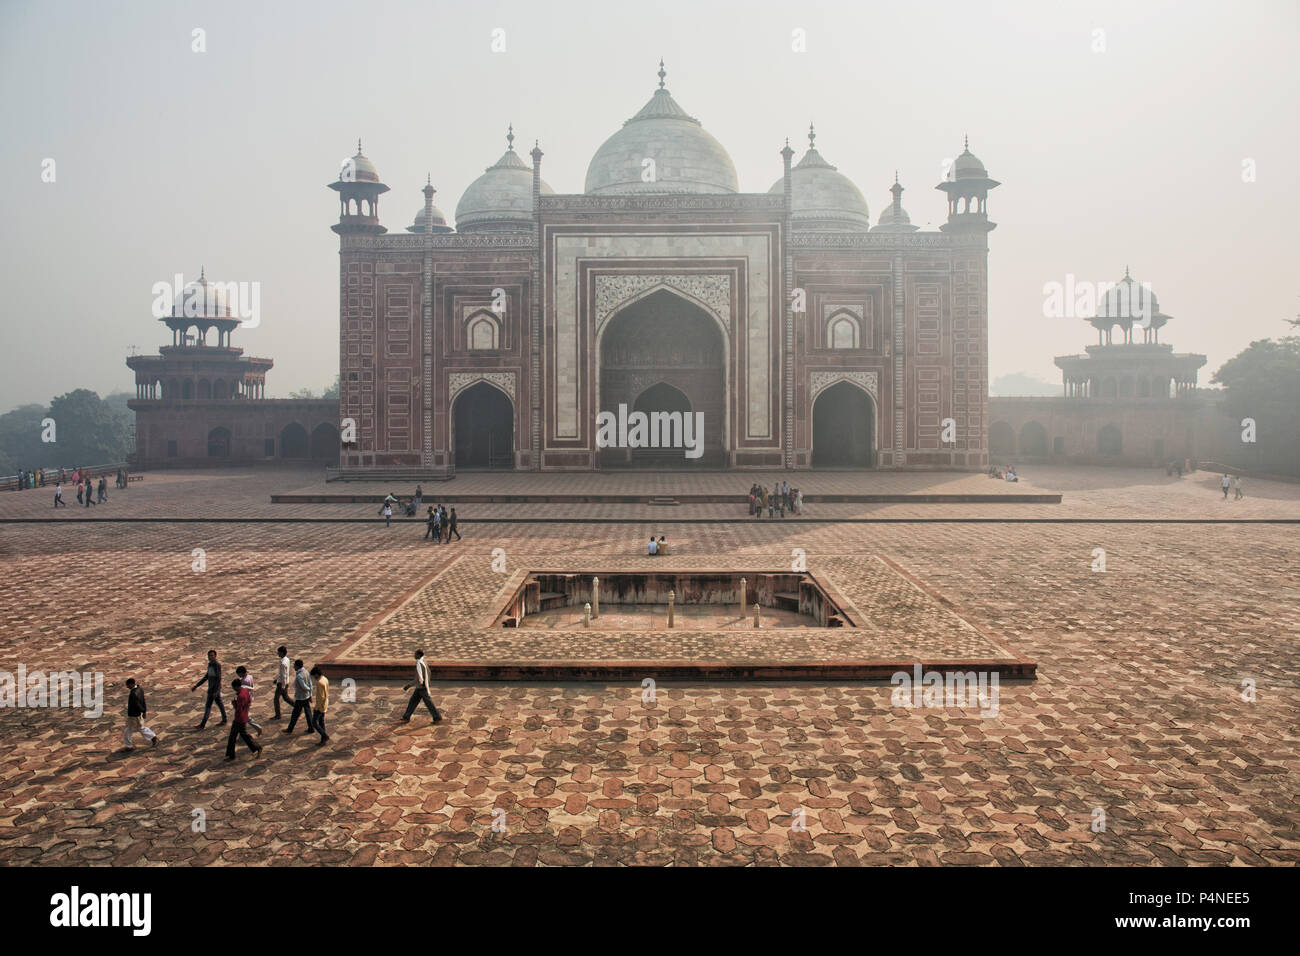 The gates to Taj Mahal in the smog, Agra, India. Air polution - Stock Image